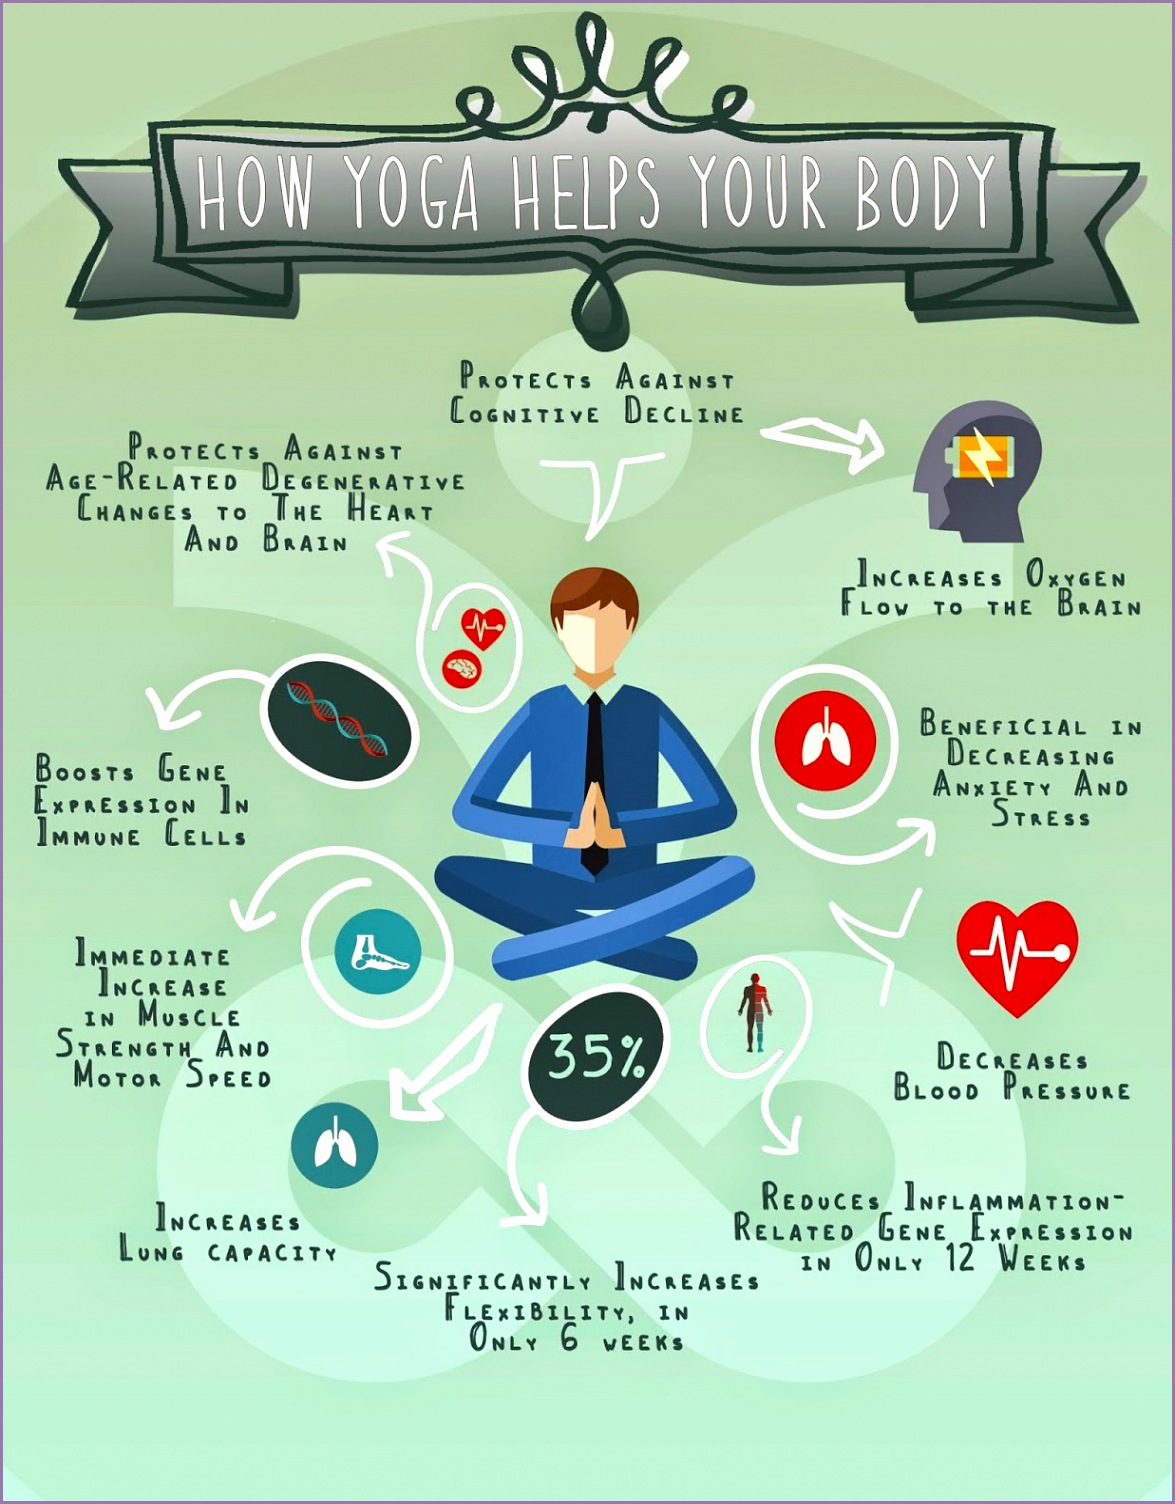 How Yoga Helps Your Body